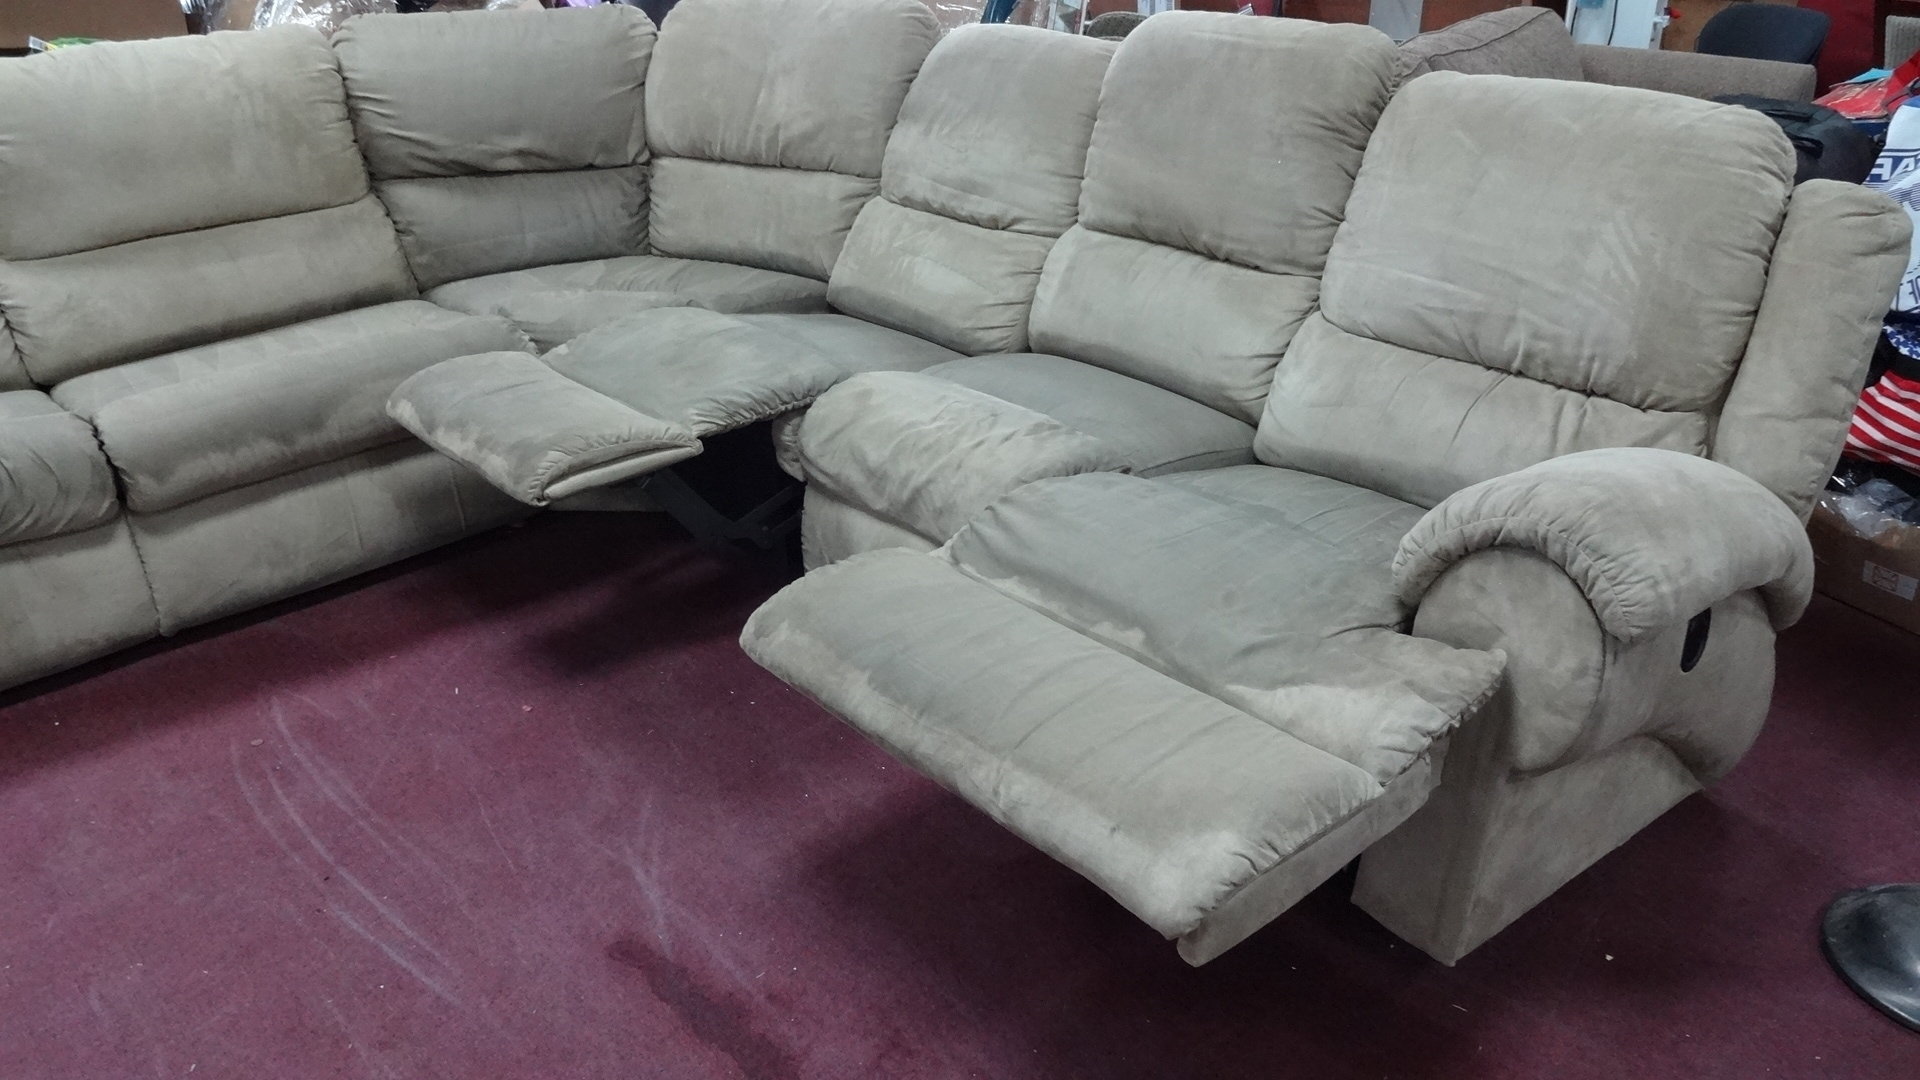 La Z Boy Sectional Sofa Bed • Sofa Bed Intended For Latest The Brick Sectional Sofas (View 6 of 20)